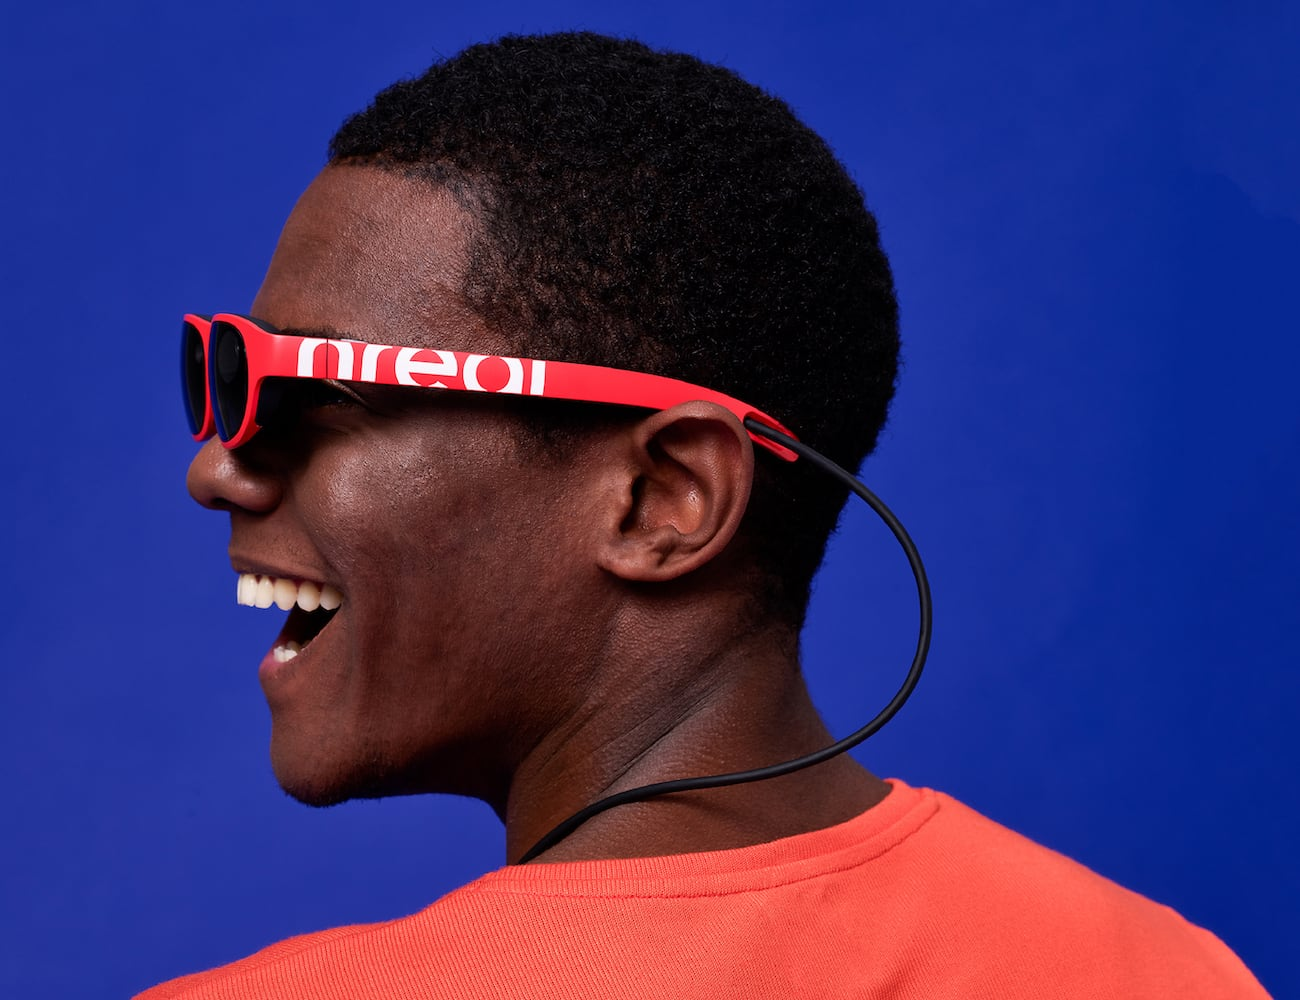 Nreal Light U+ Real Glass mixed reality glasses are lightweight ready-to-wear spectacles